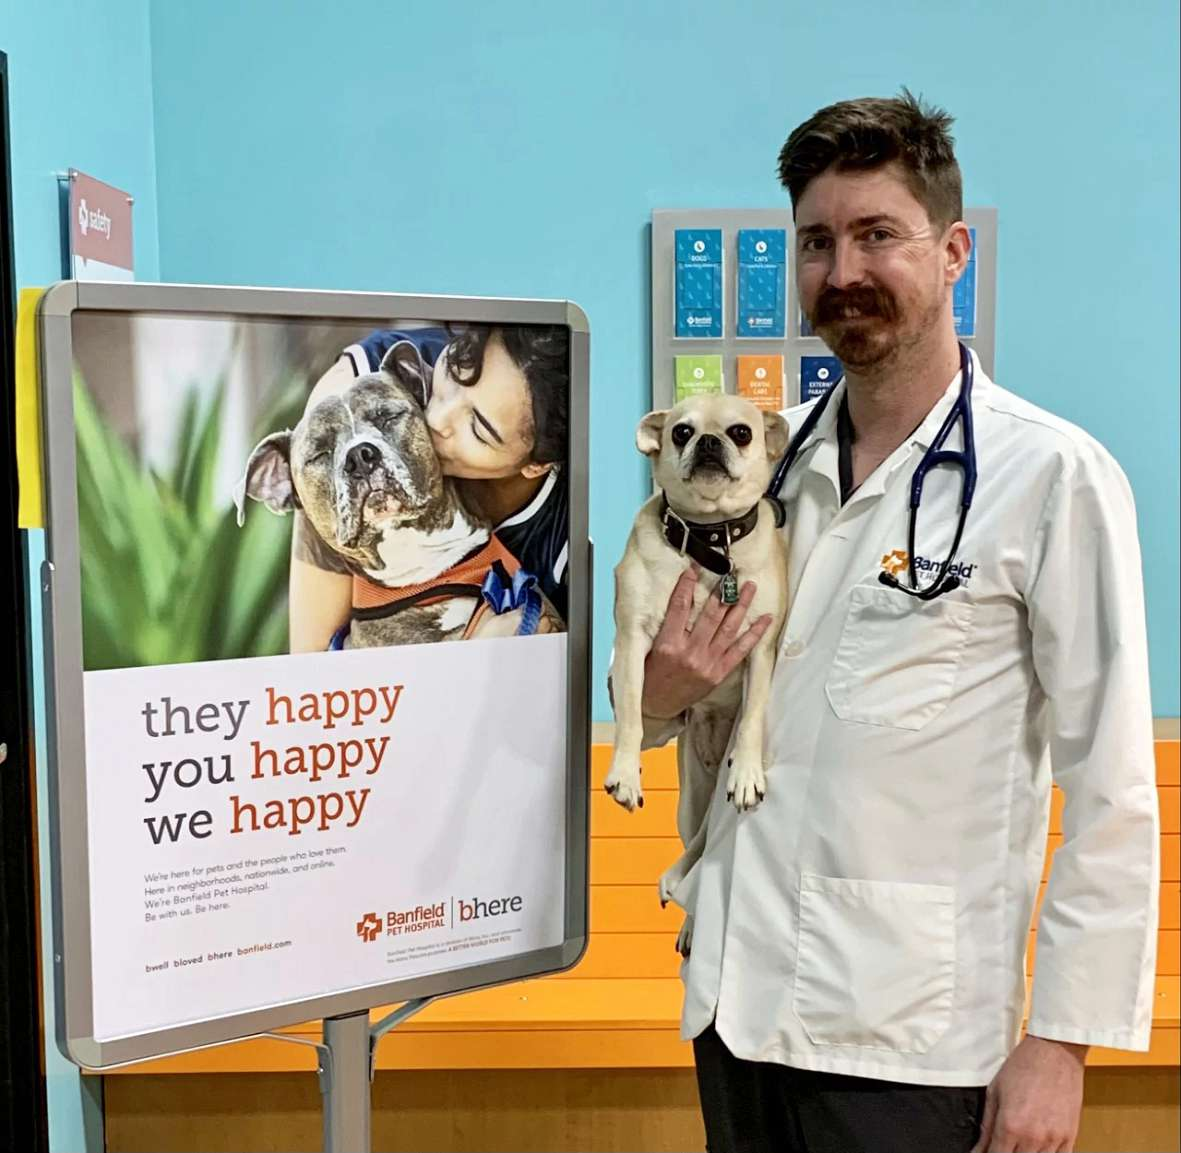 A male veterinarian holding a dog at the Banfield Pet Hospital